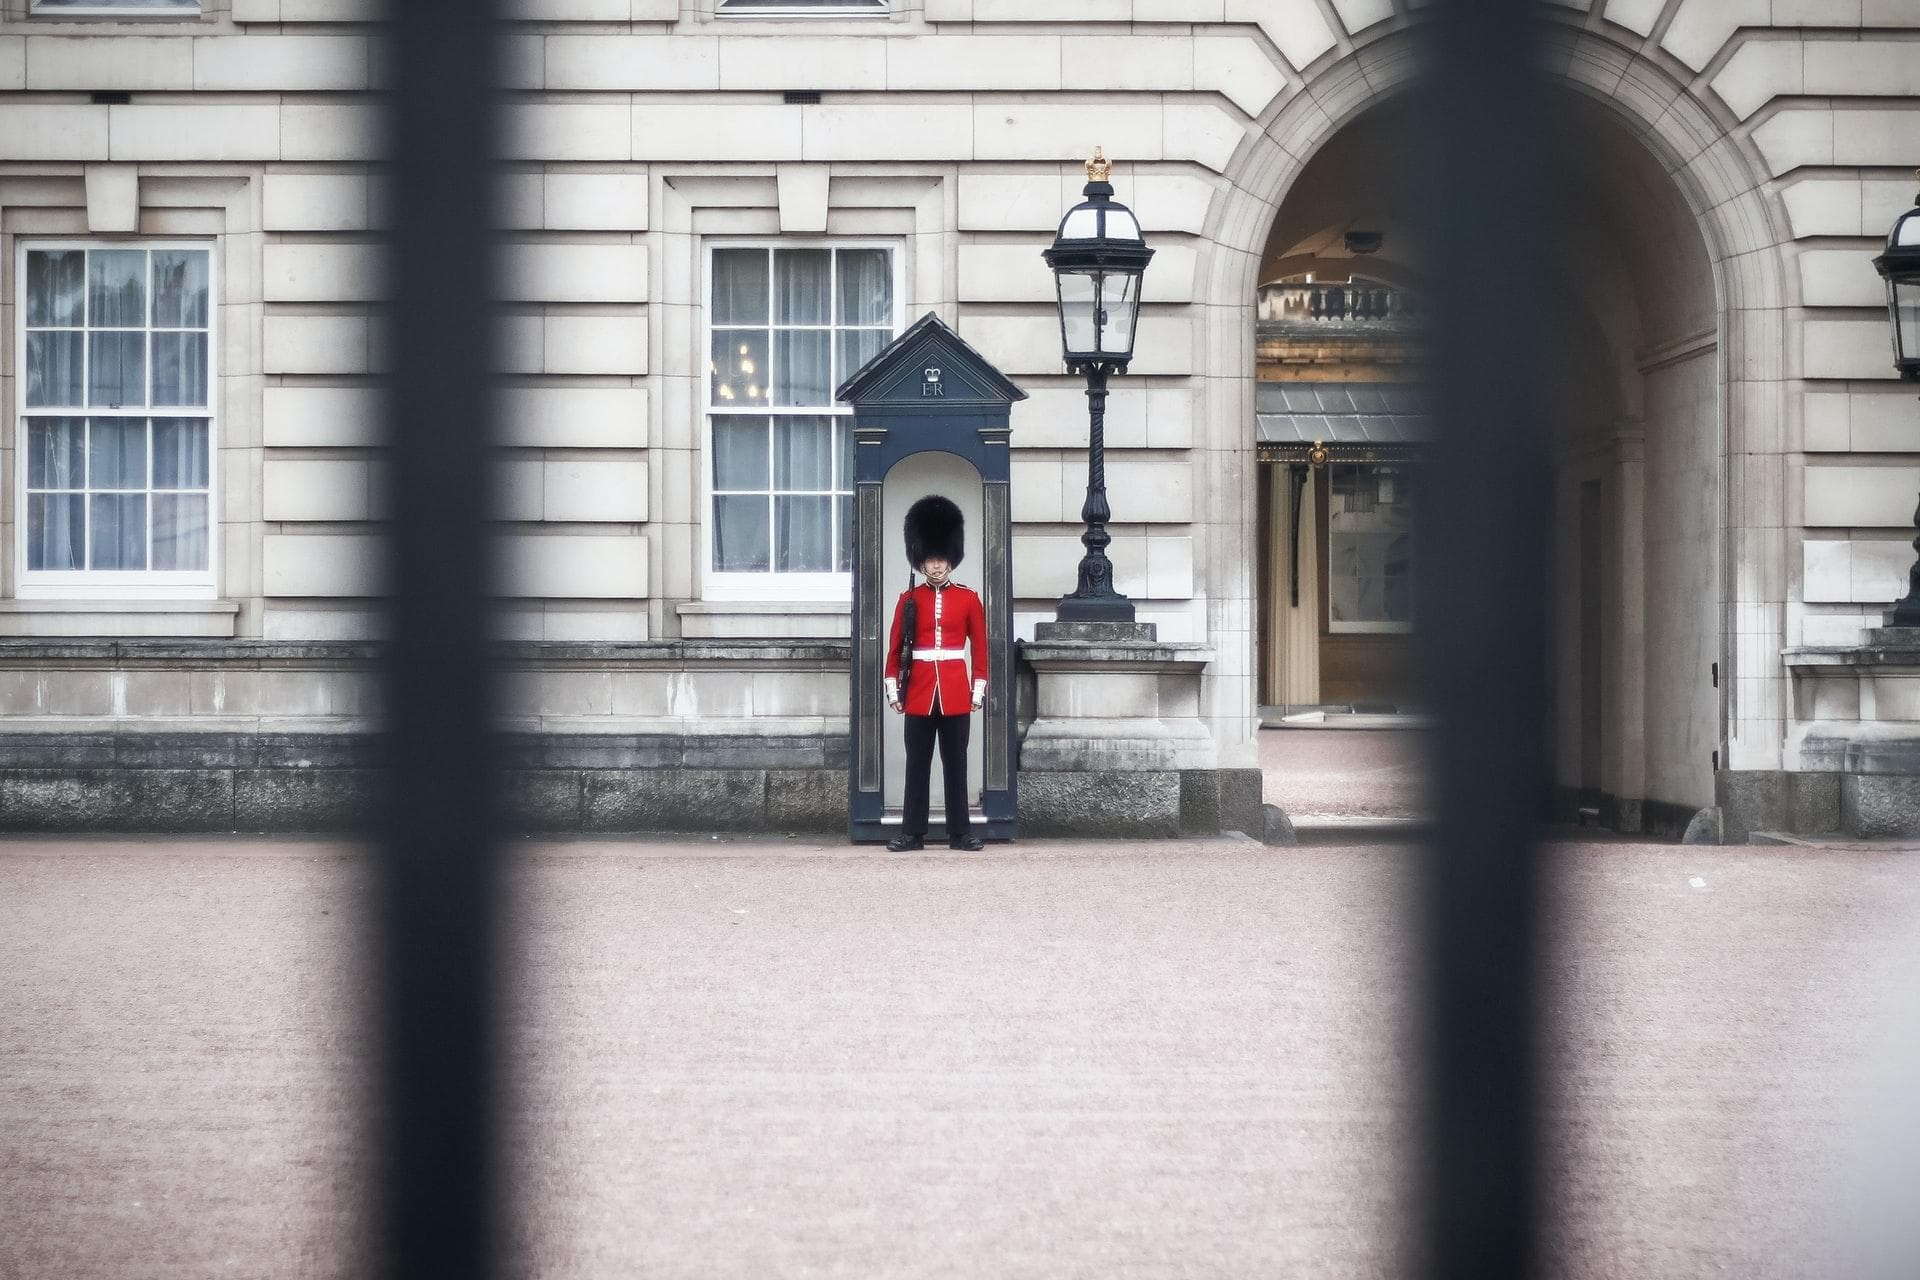 Guard in front of Buckingham Palace